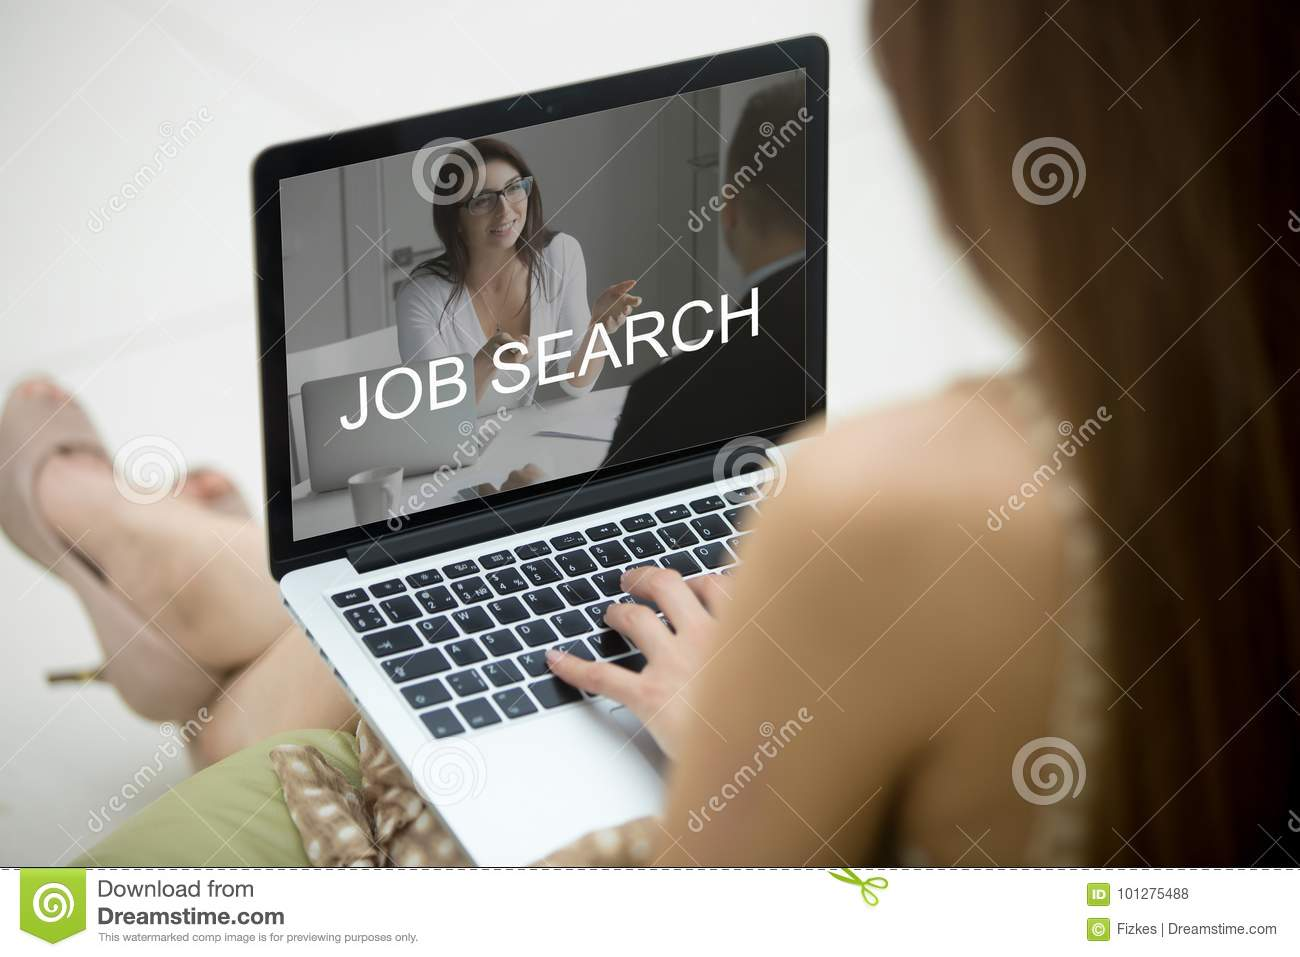 Woman sitting on sofa with laptop, trying to find job.